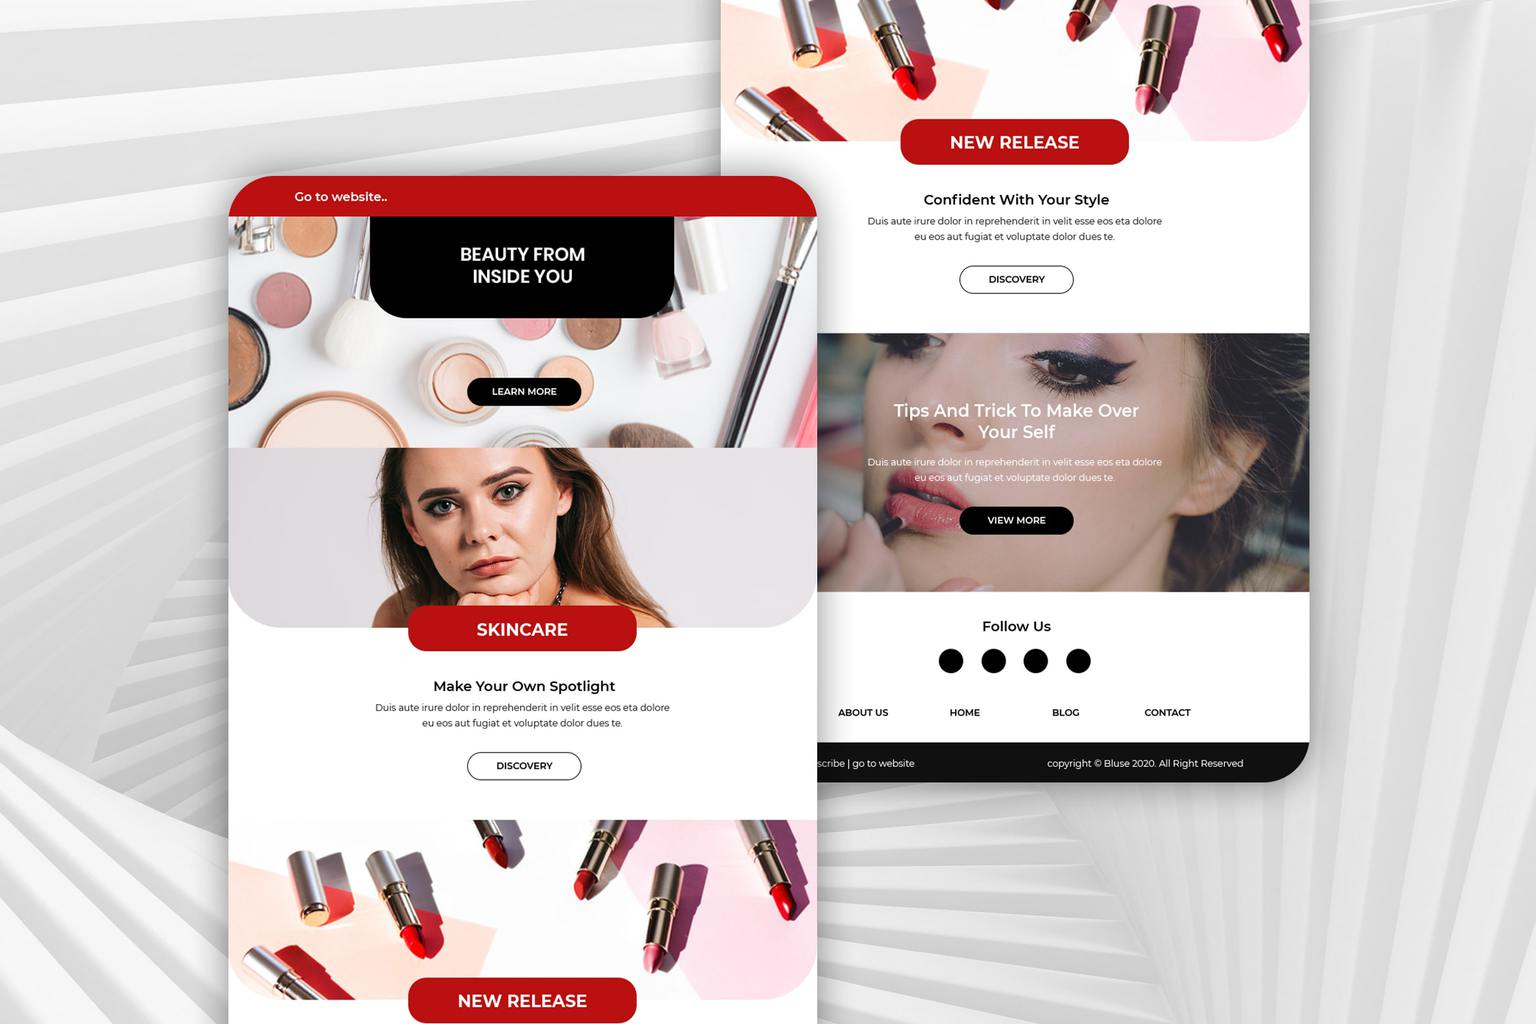 skin care makeup products email newsletter 1